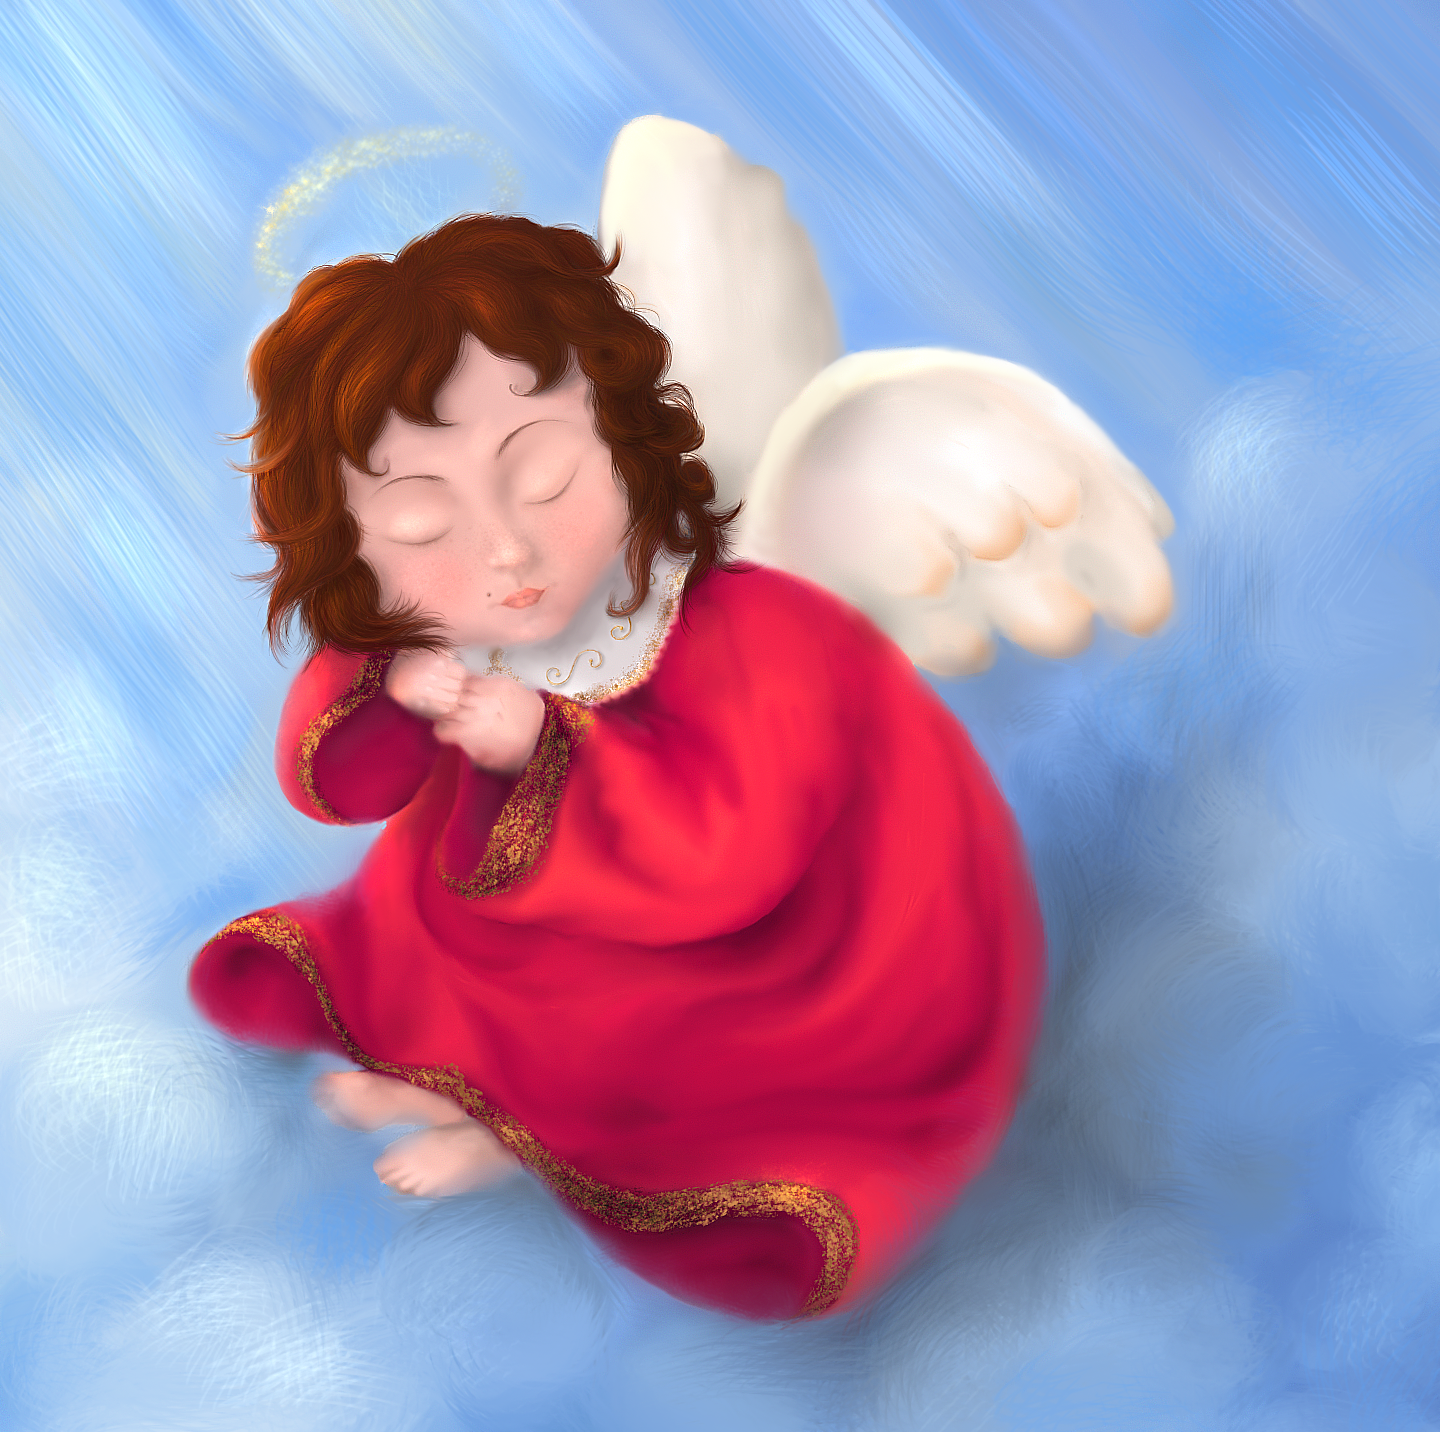 Ssh,don't wake THE ANGEL by emmagucci